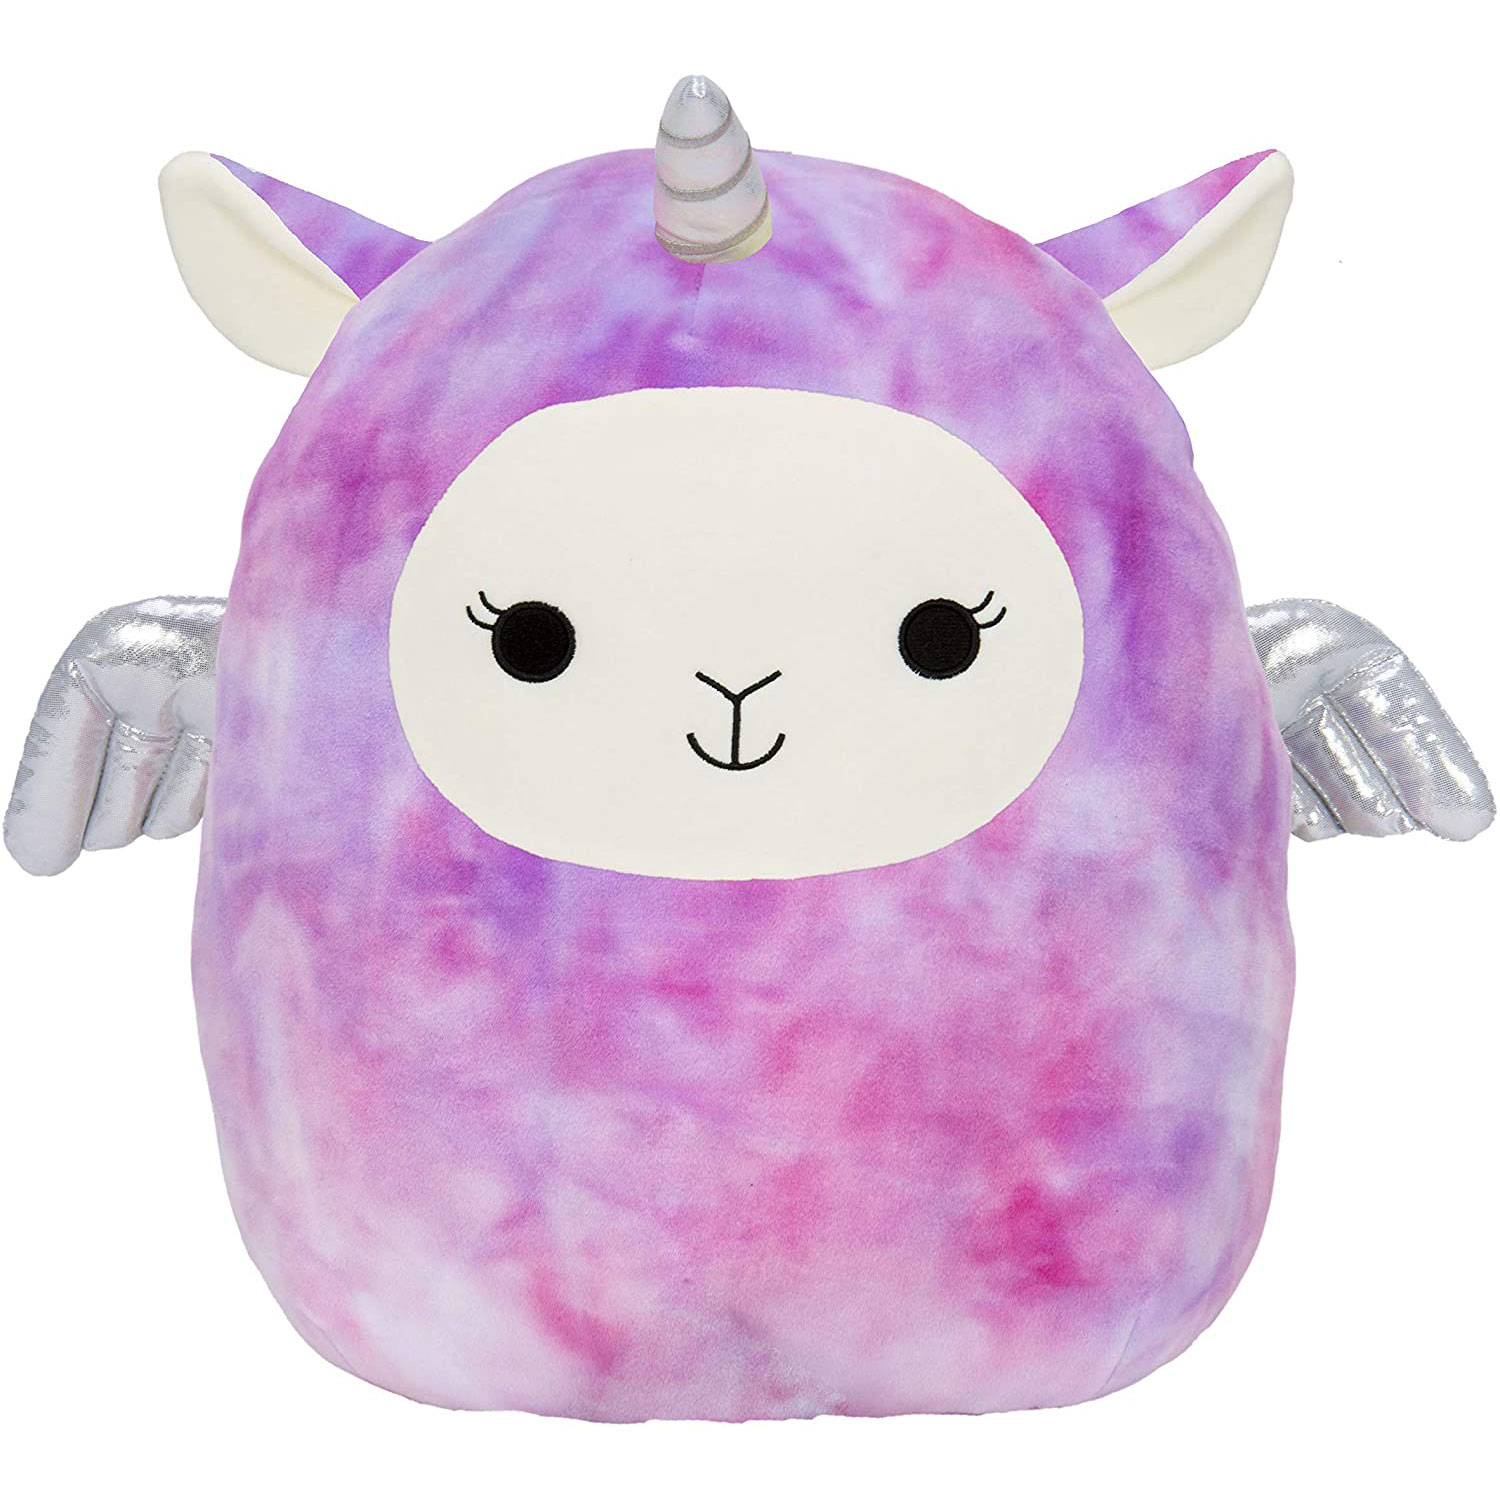 Squishmallows Plush 16-Inch Margaux The Llama Pegacorn